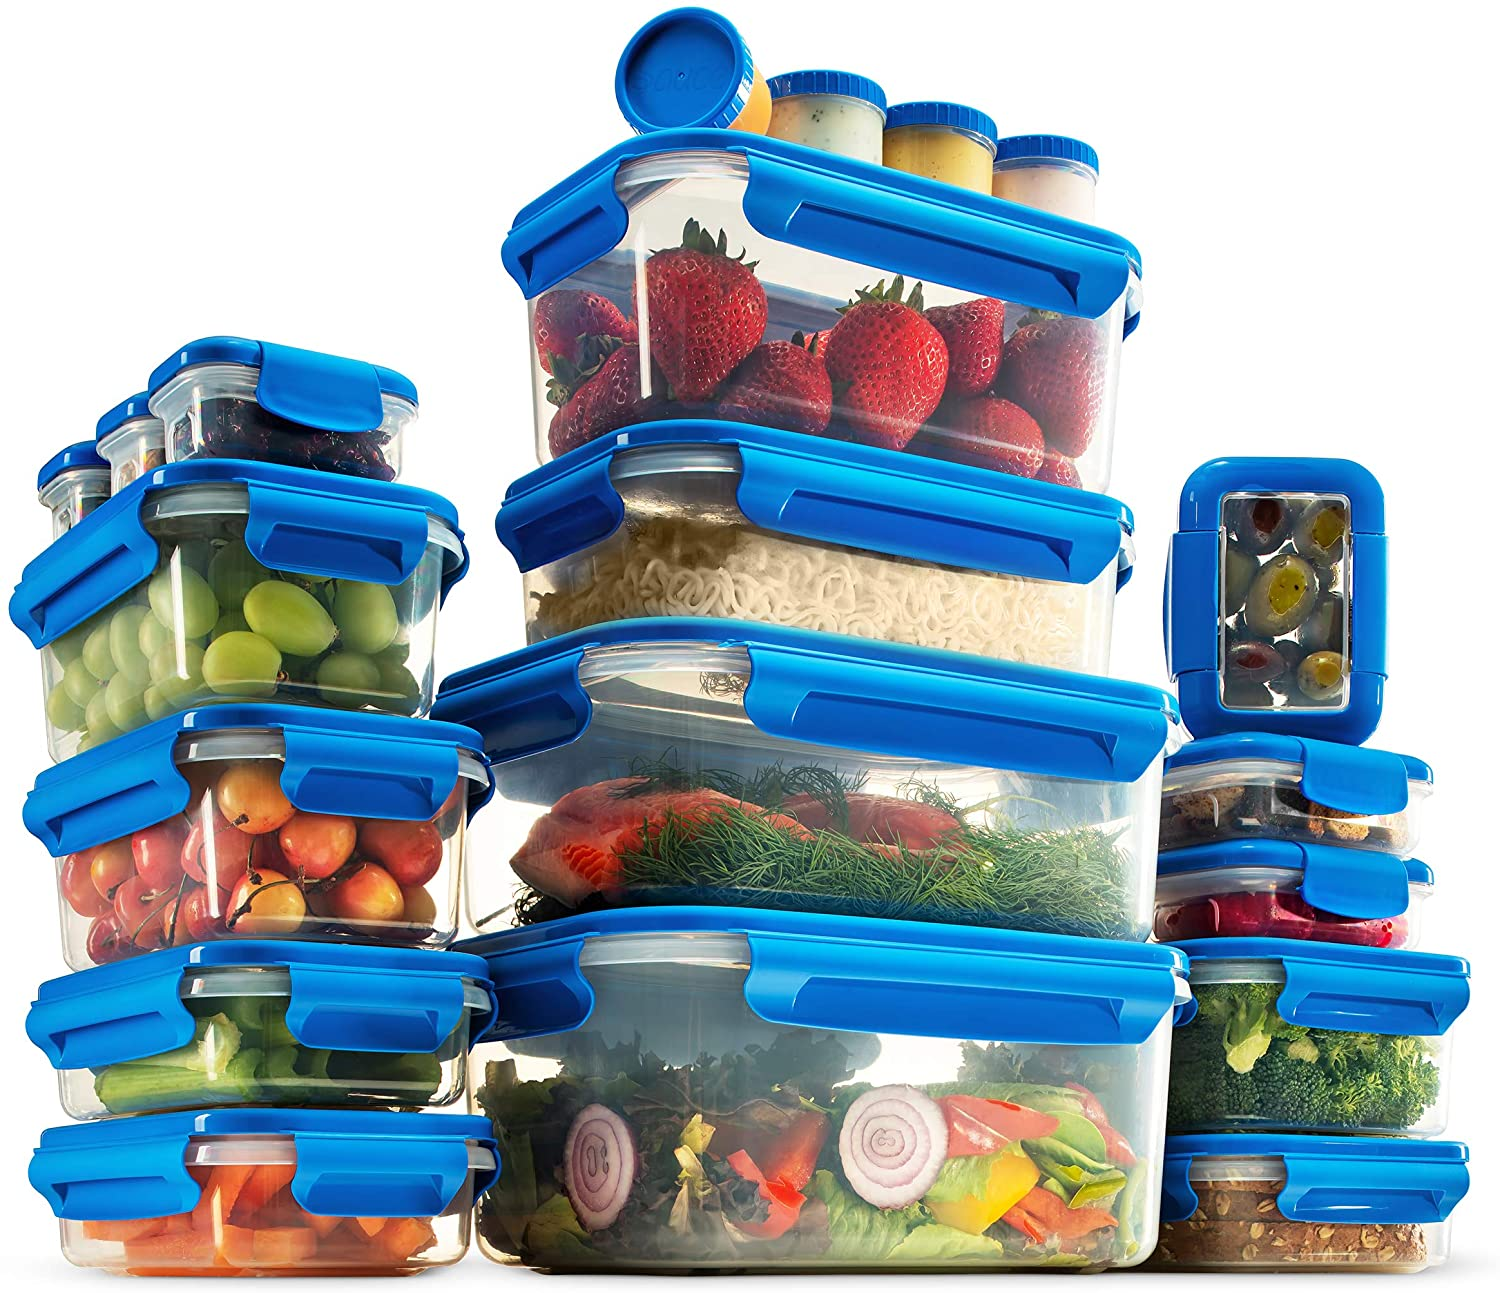 40-Piece Airtight Food Containers With Lids - Superior BPA-Free Food Storage Containers Set - 100% Leak Proof Takeaway Containers, Reusable Meal Prep Lunch Boxes - Dishwasher, Microwave & Freezer Safe